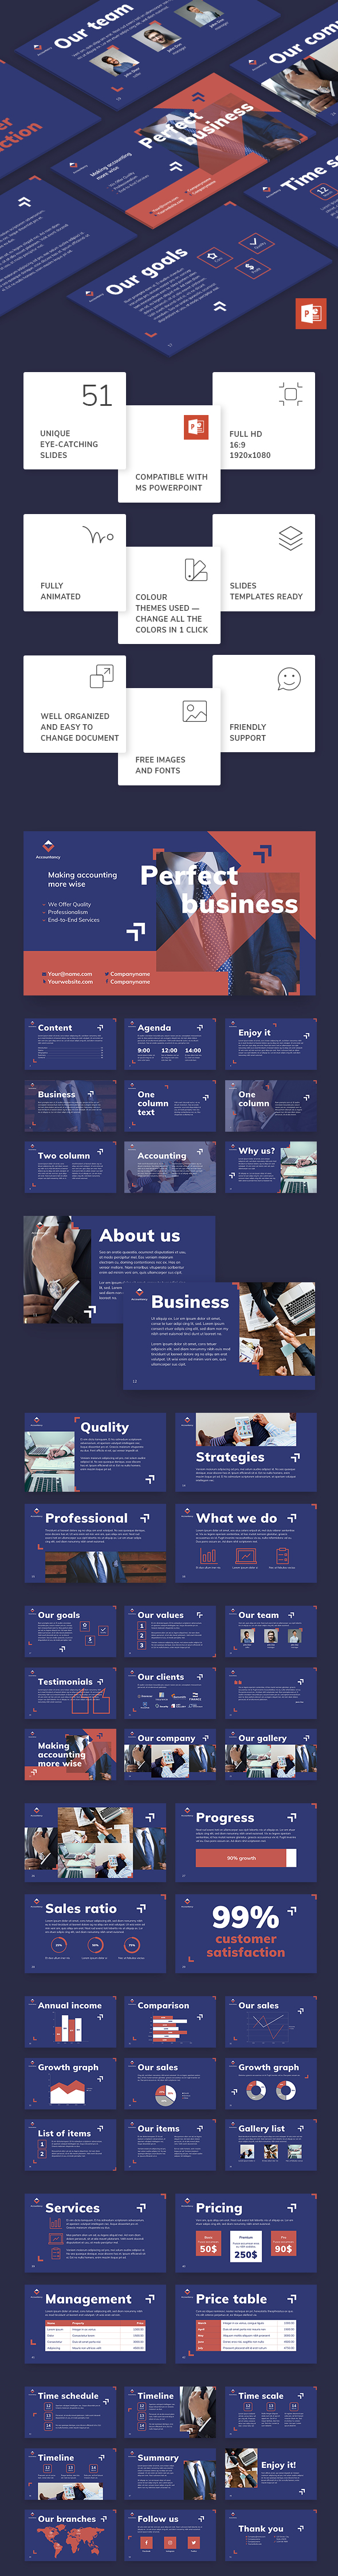 Accountancy Firm PowerPoint Presentation Template